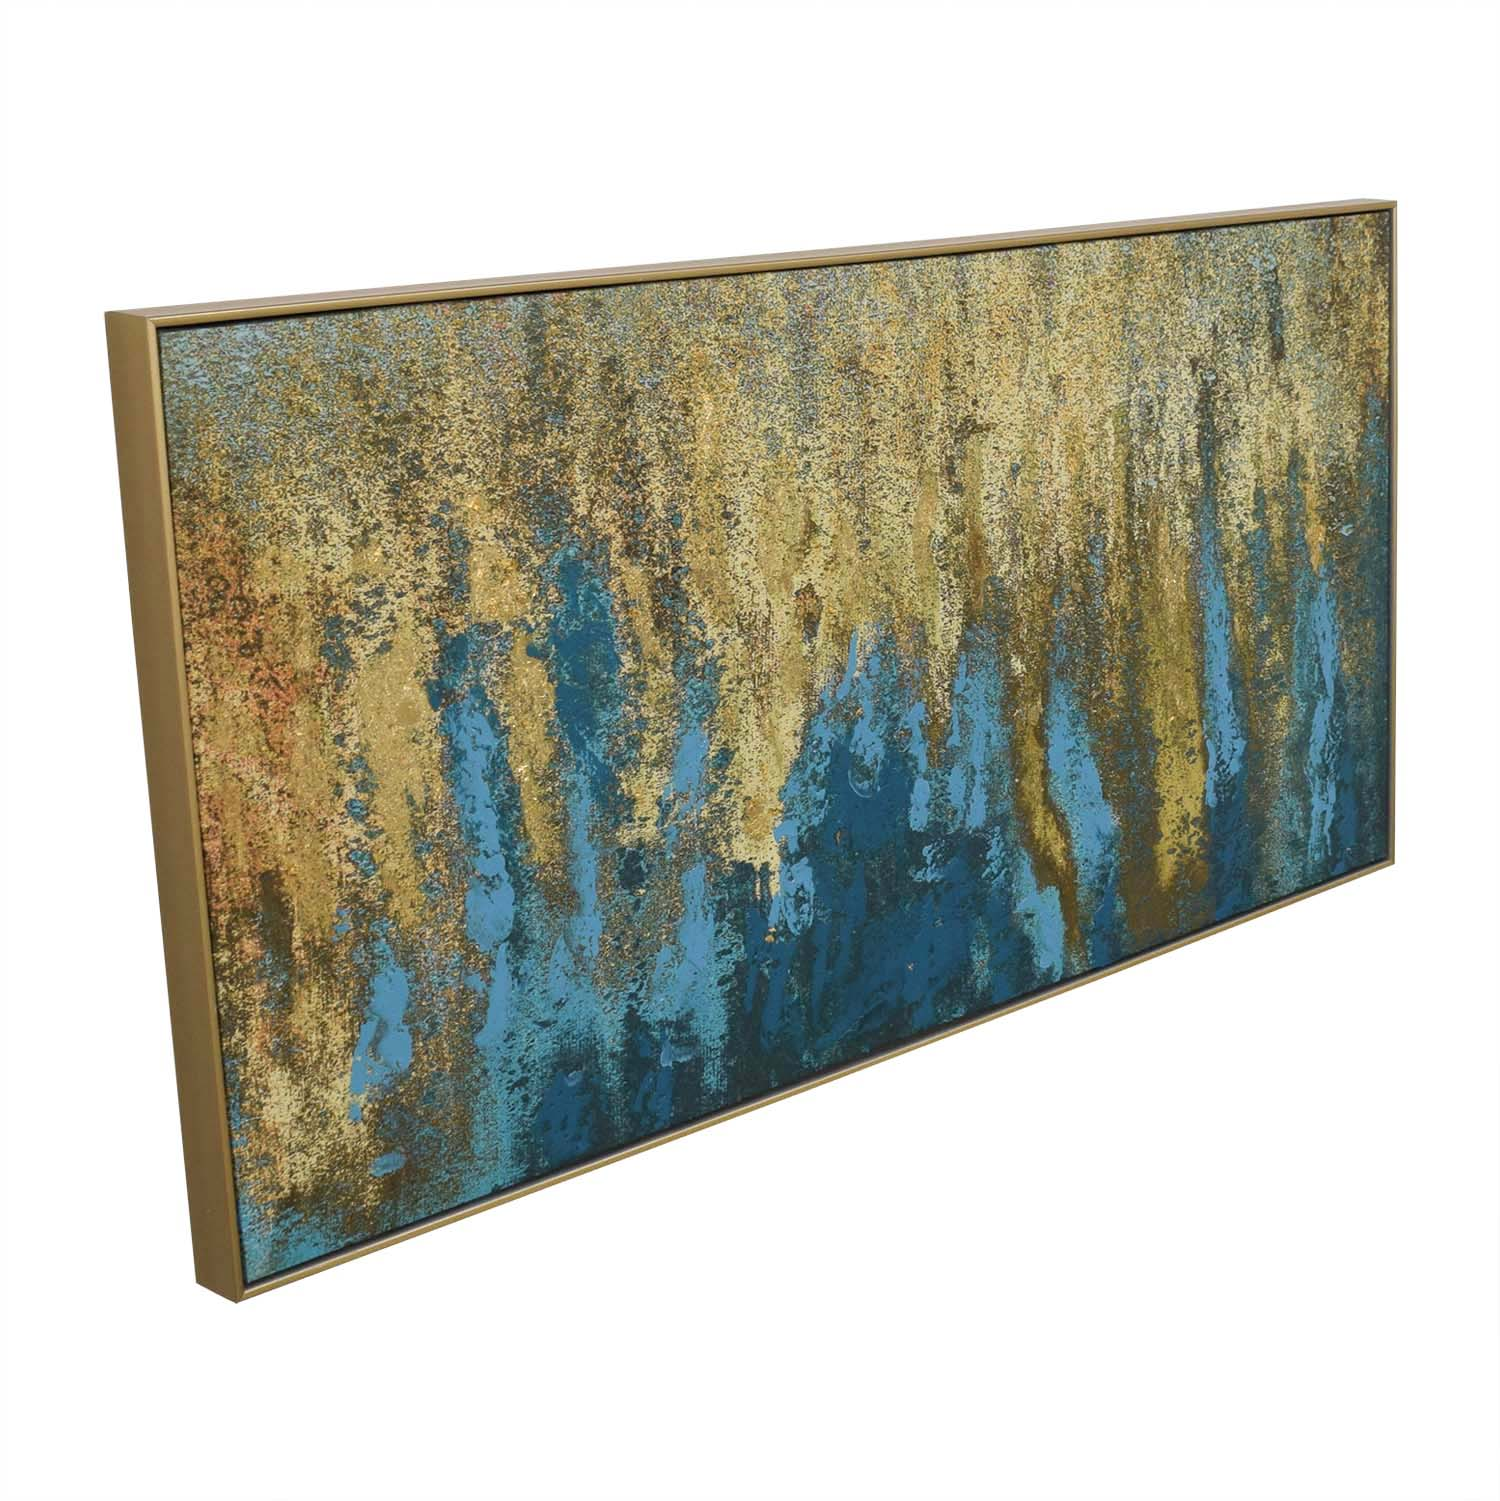 World Market World Market Teal & Gold Wall Art in Gold Frame for sale